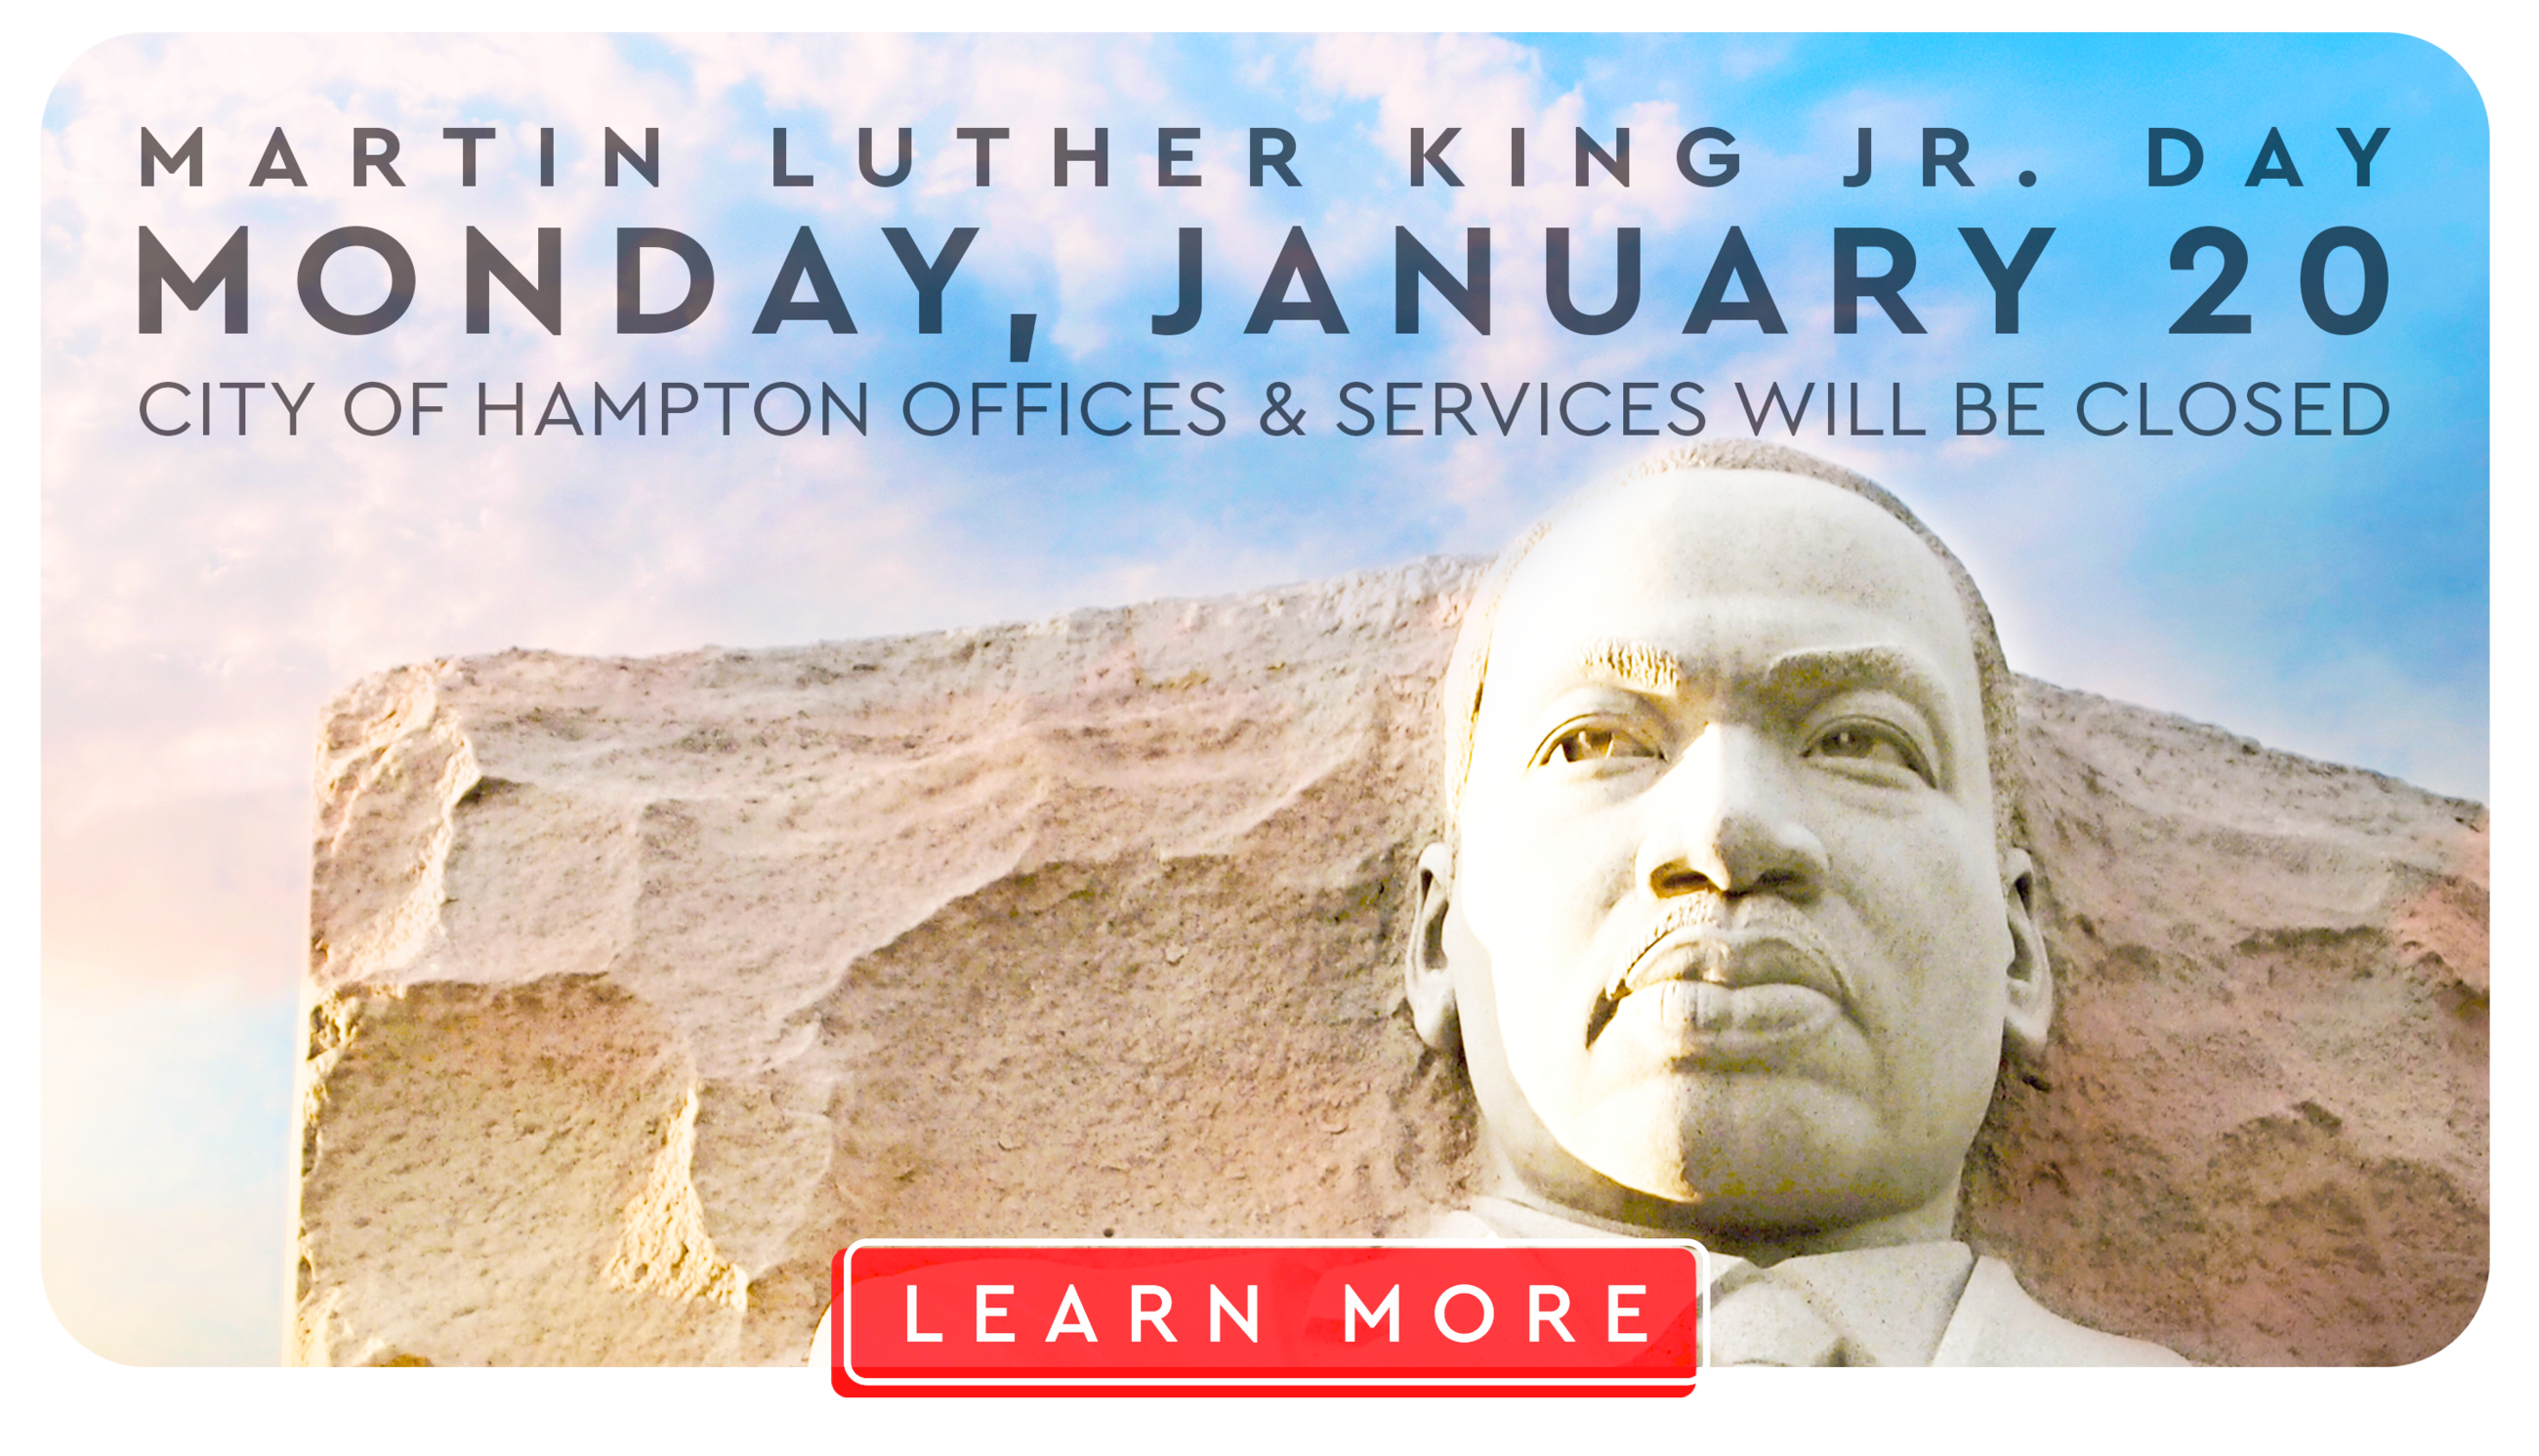 MLK Day closings